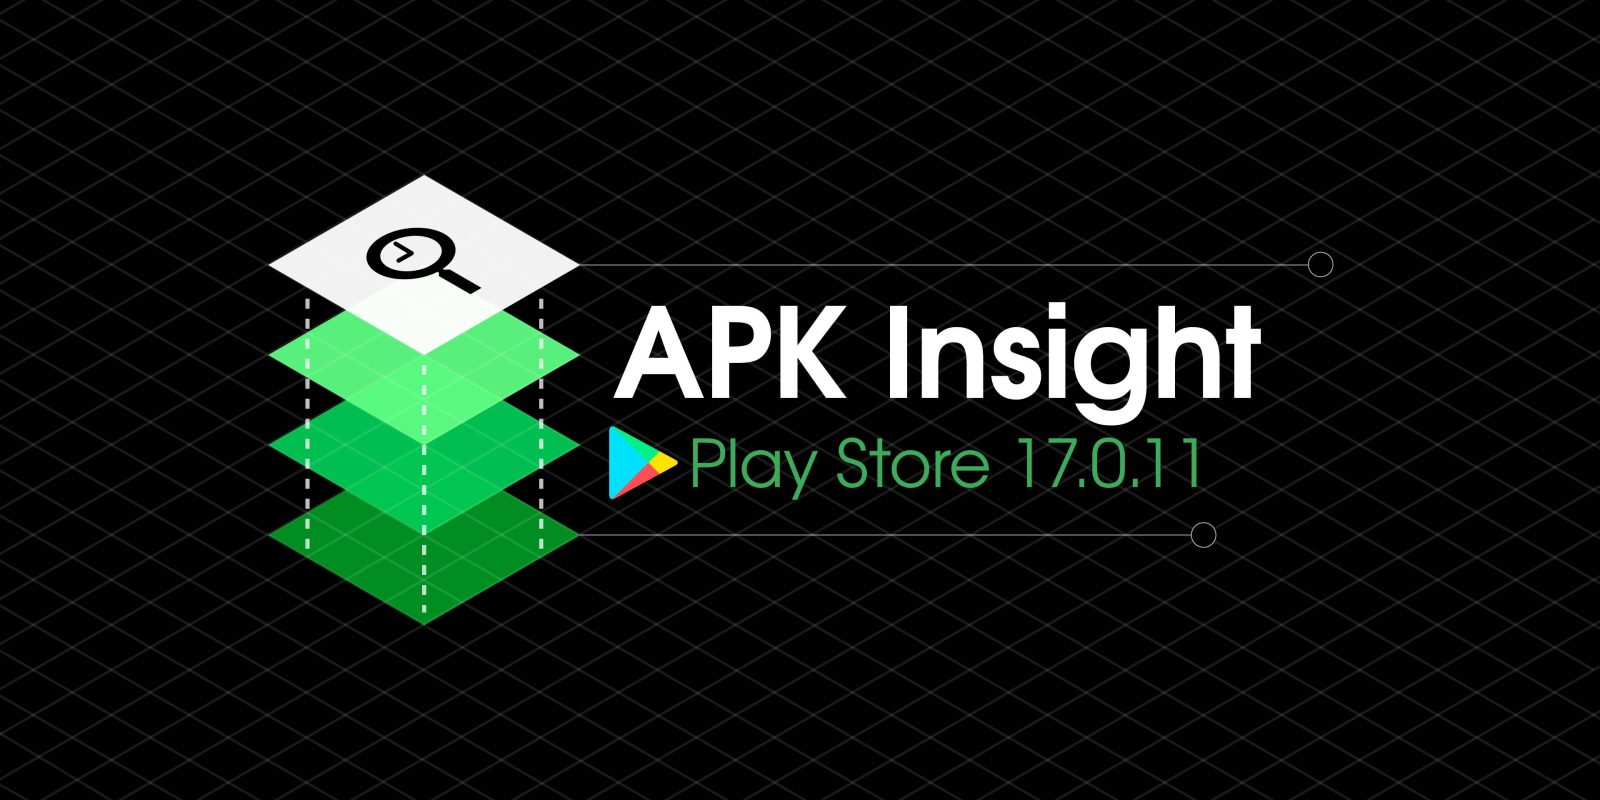 Play Store 17.0.11 preps Material Theme account switcher, dark theme settings [Gallery]